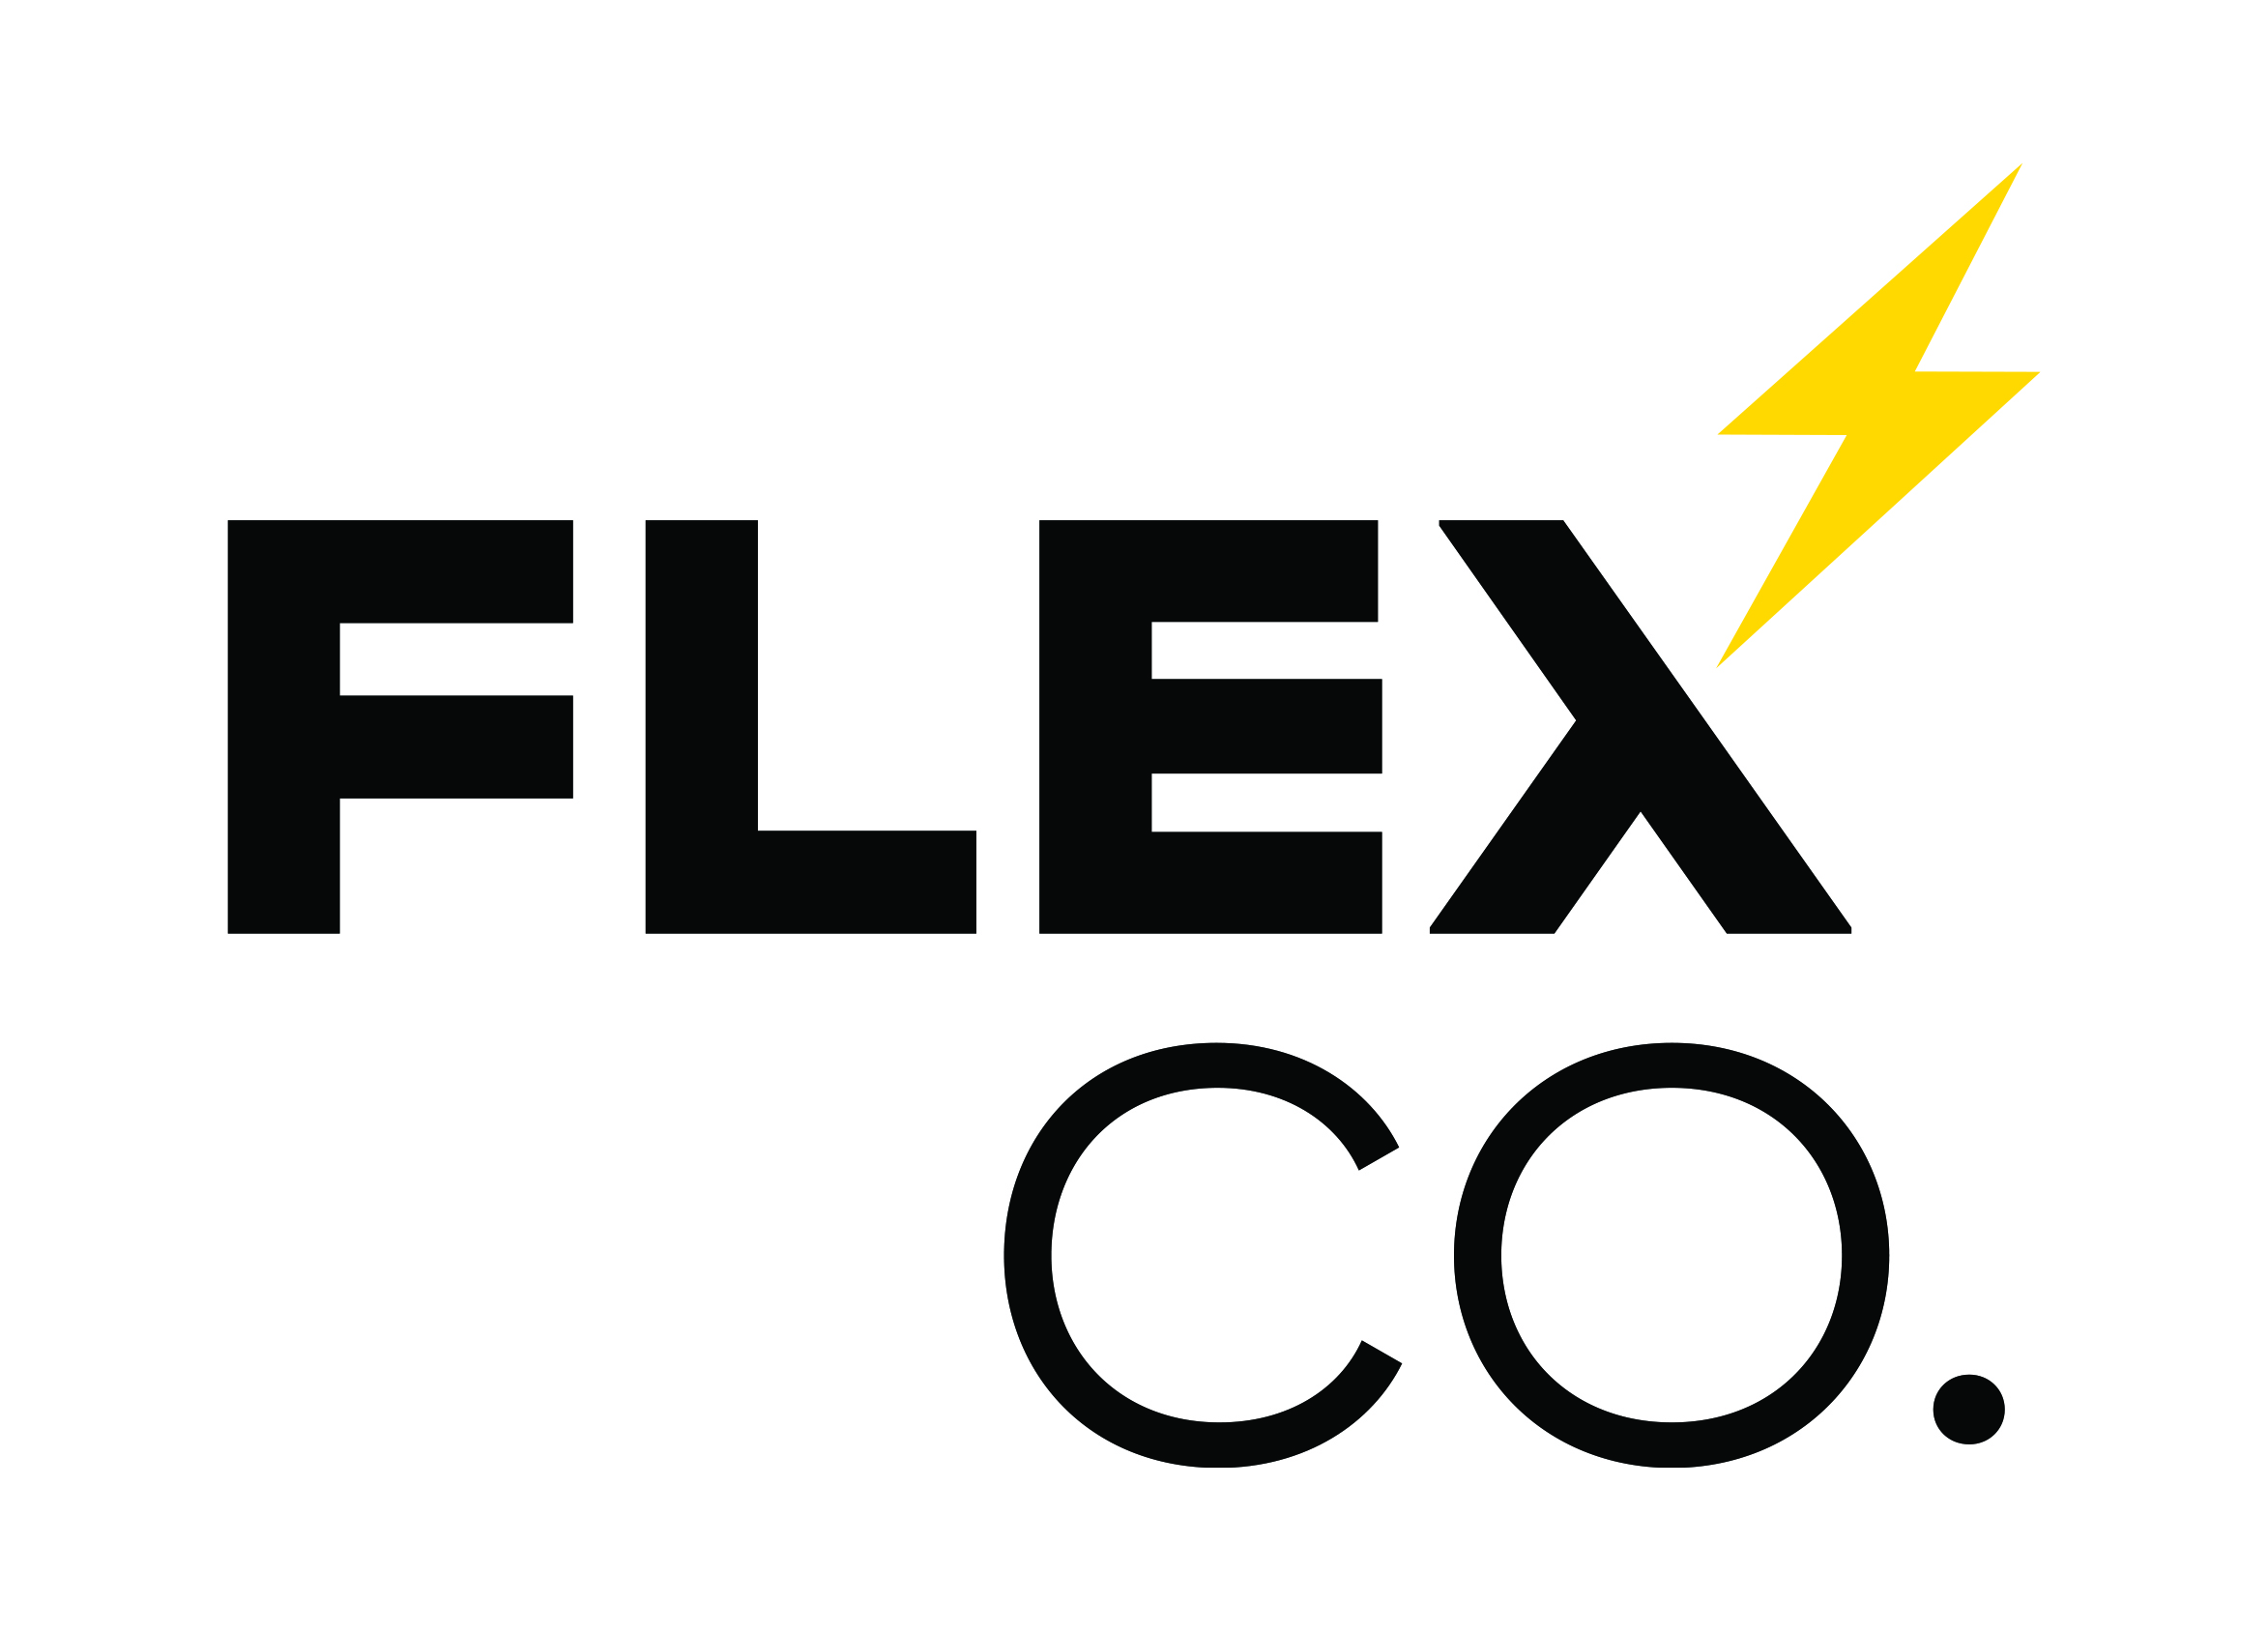 FLEXCO_LOGO_black_yellow.jpg